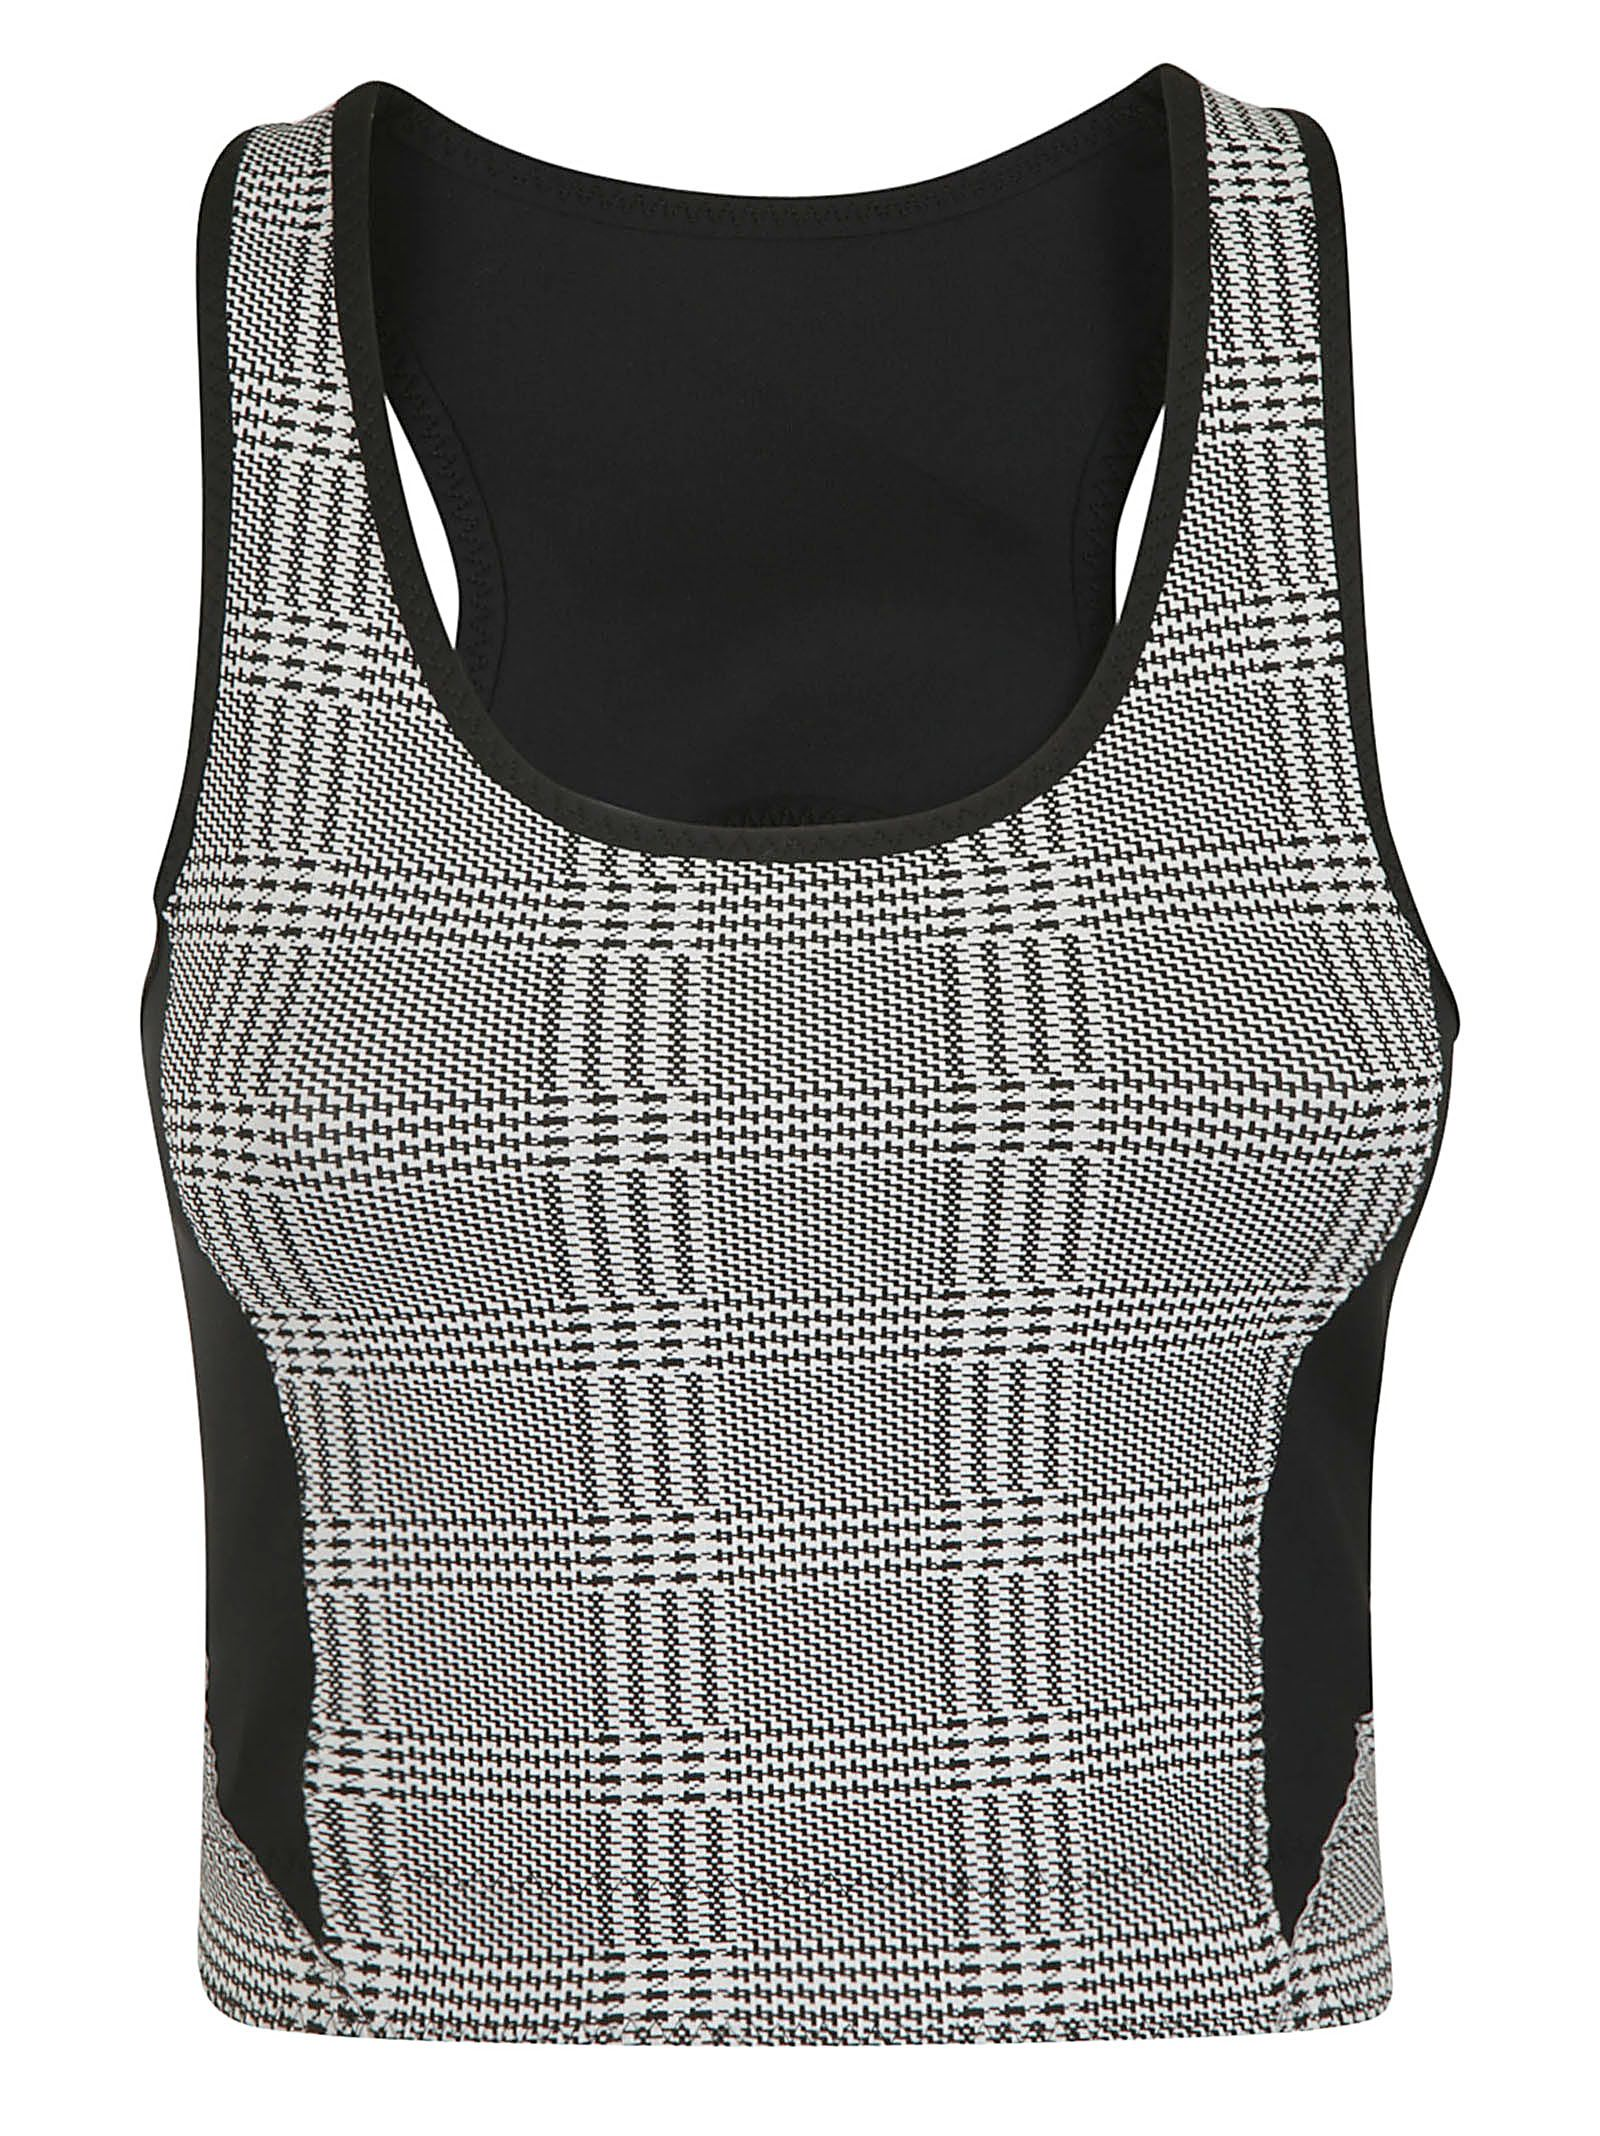 """SÀPOPA """"Terry"""" Houndstooth Crop Top - Gray Size Xs"""